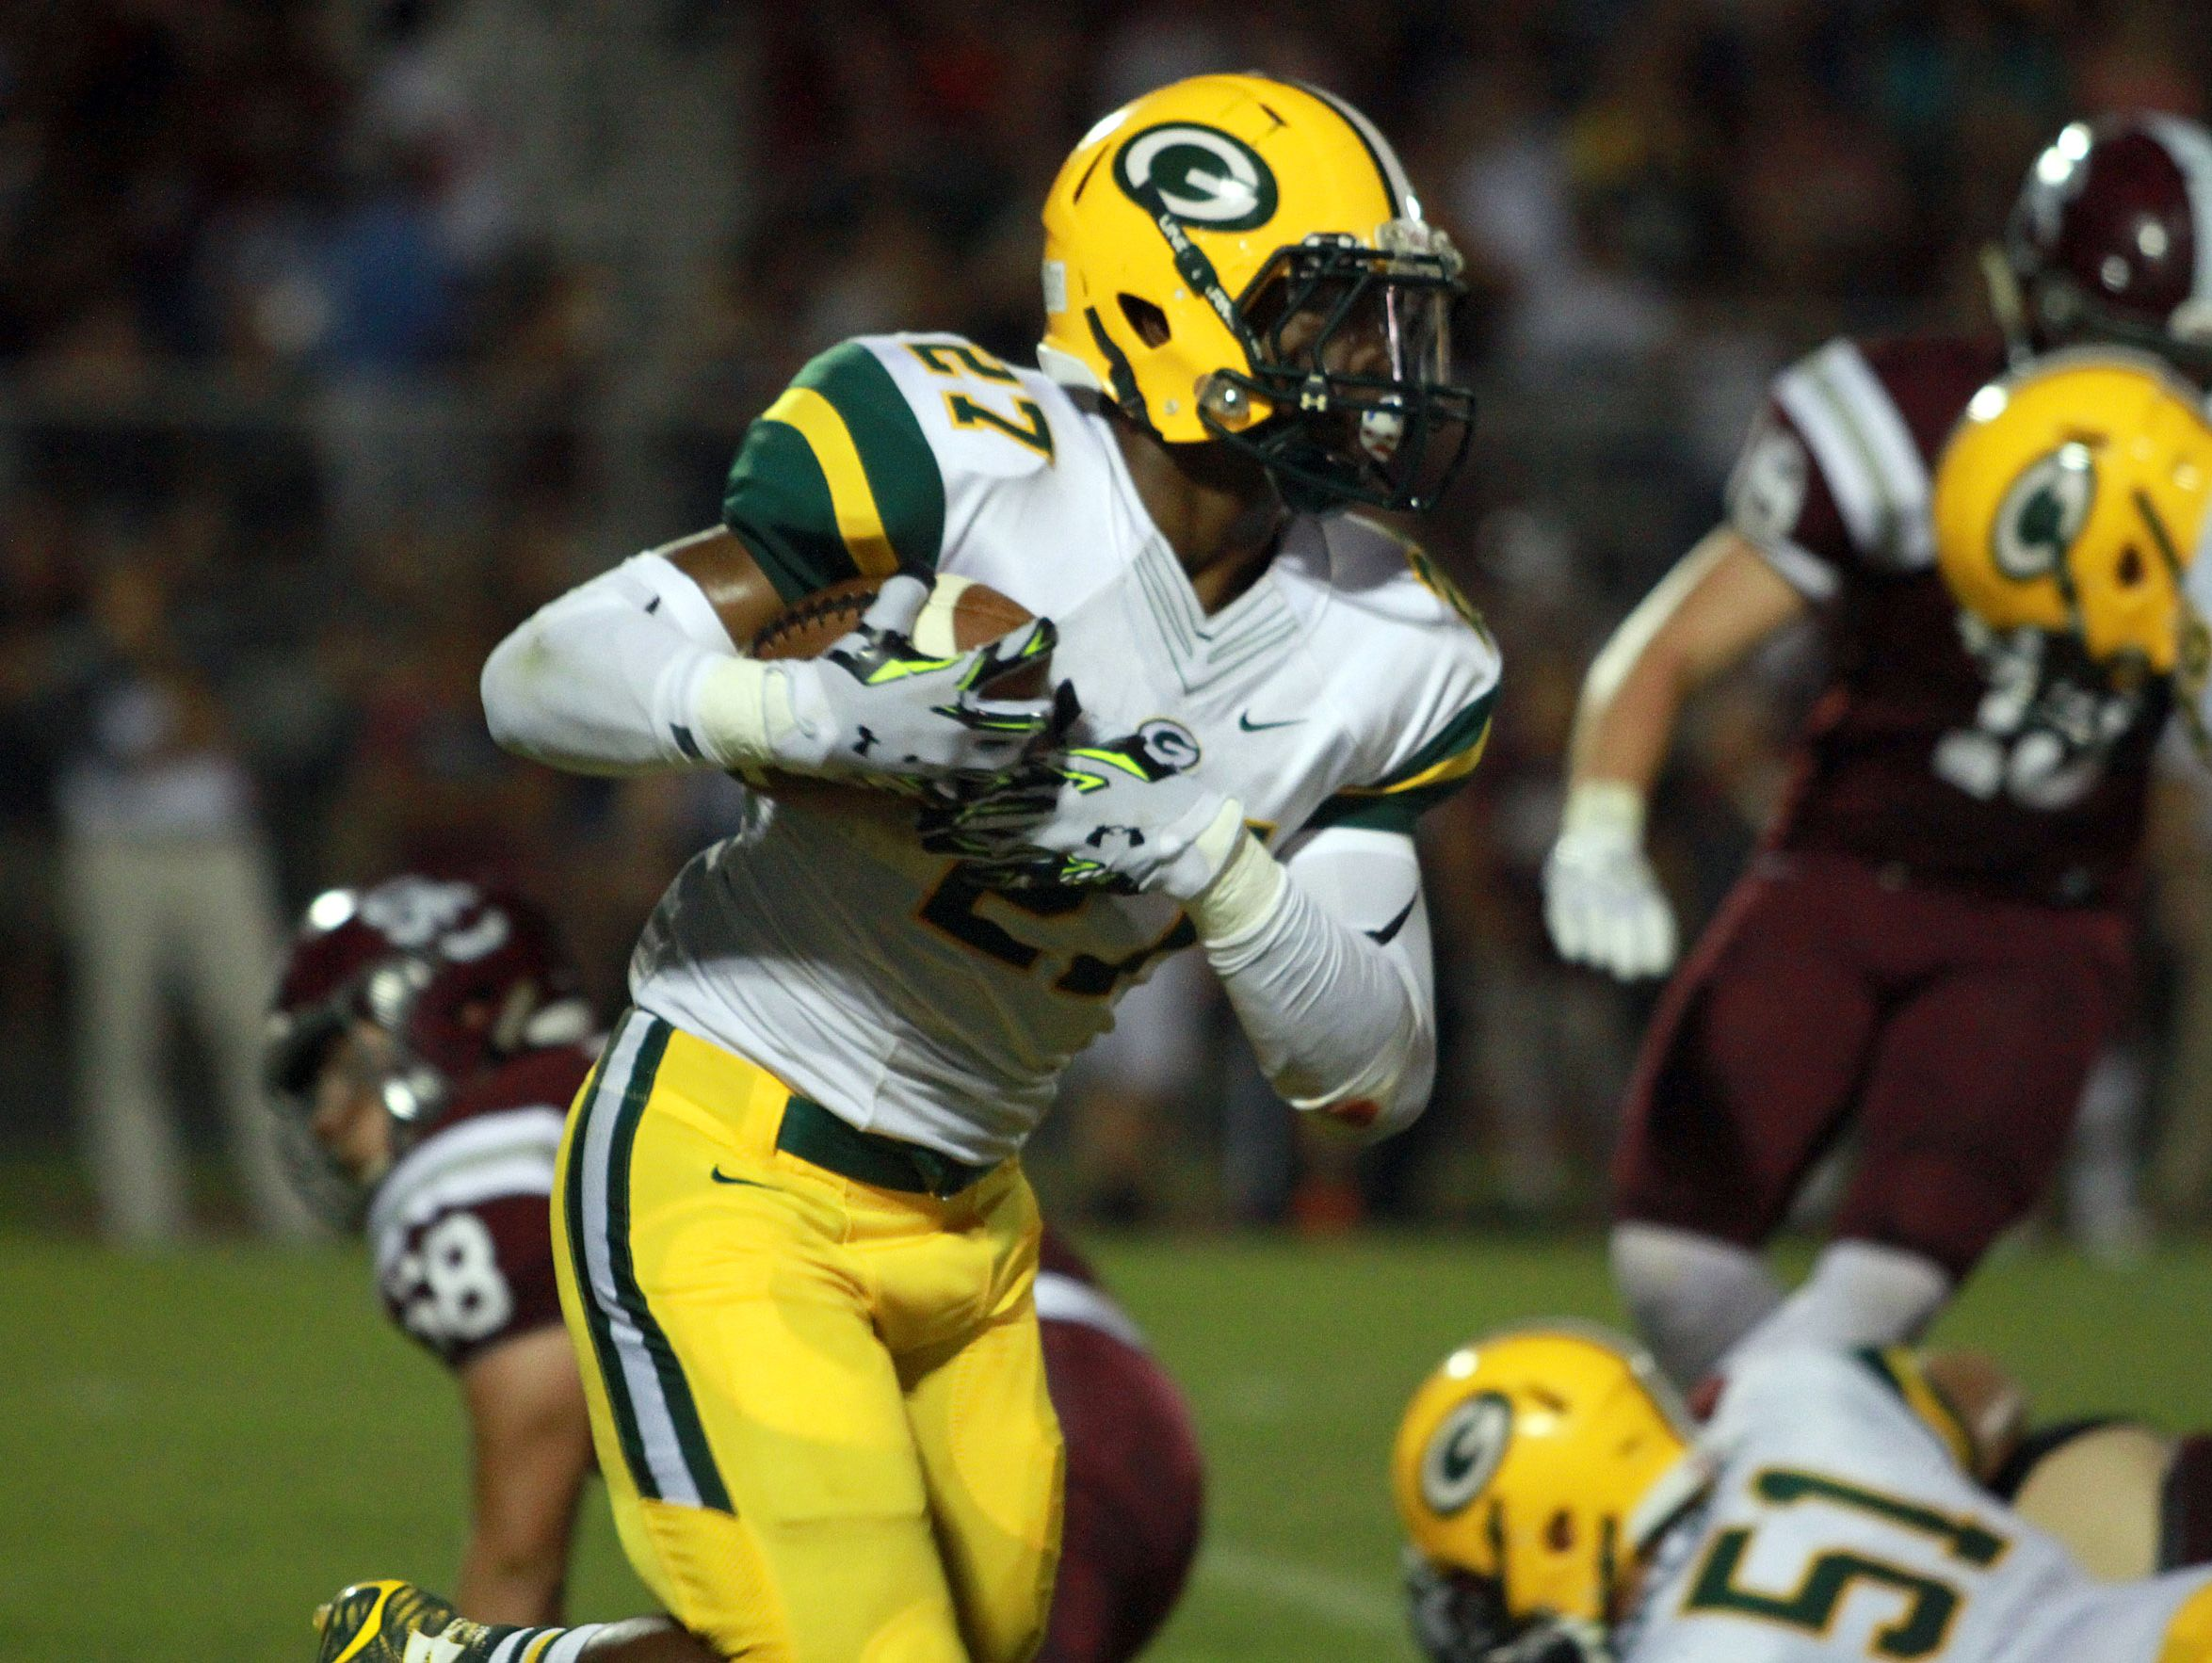 Gallatin's Jordan Mason became the school's all-time leading rusher in Friday's win over Hendersonville.